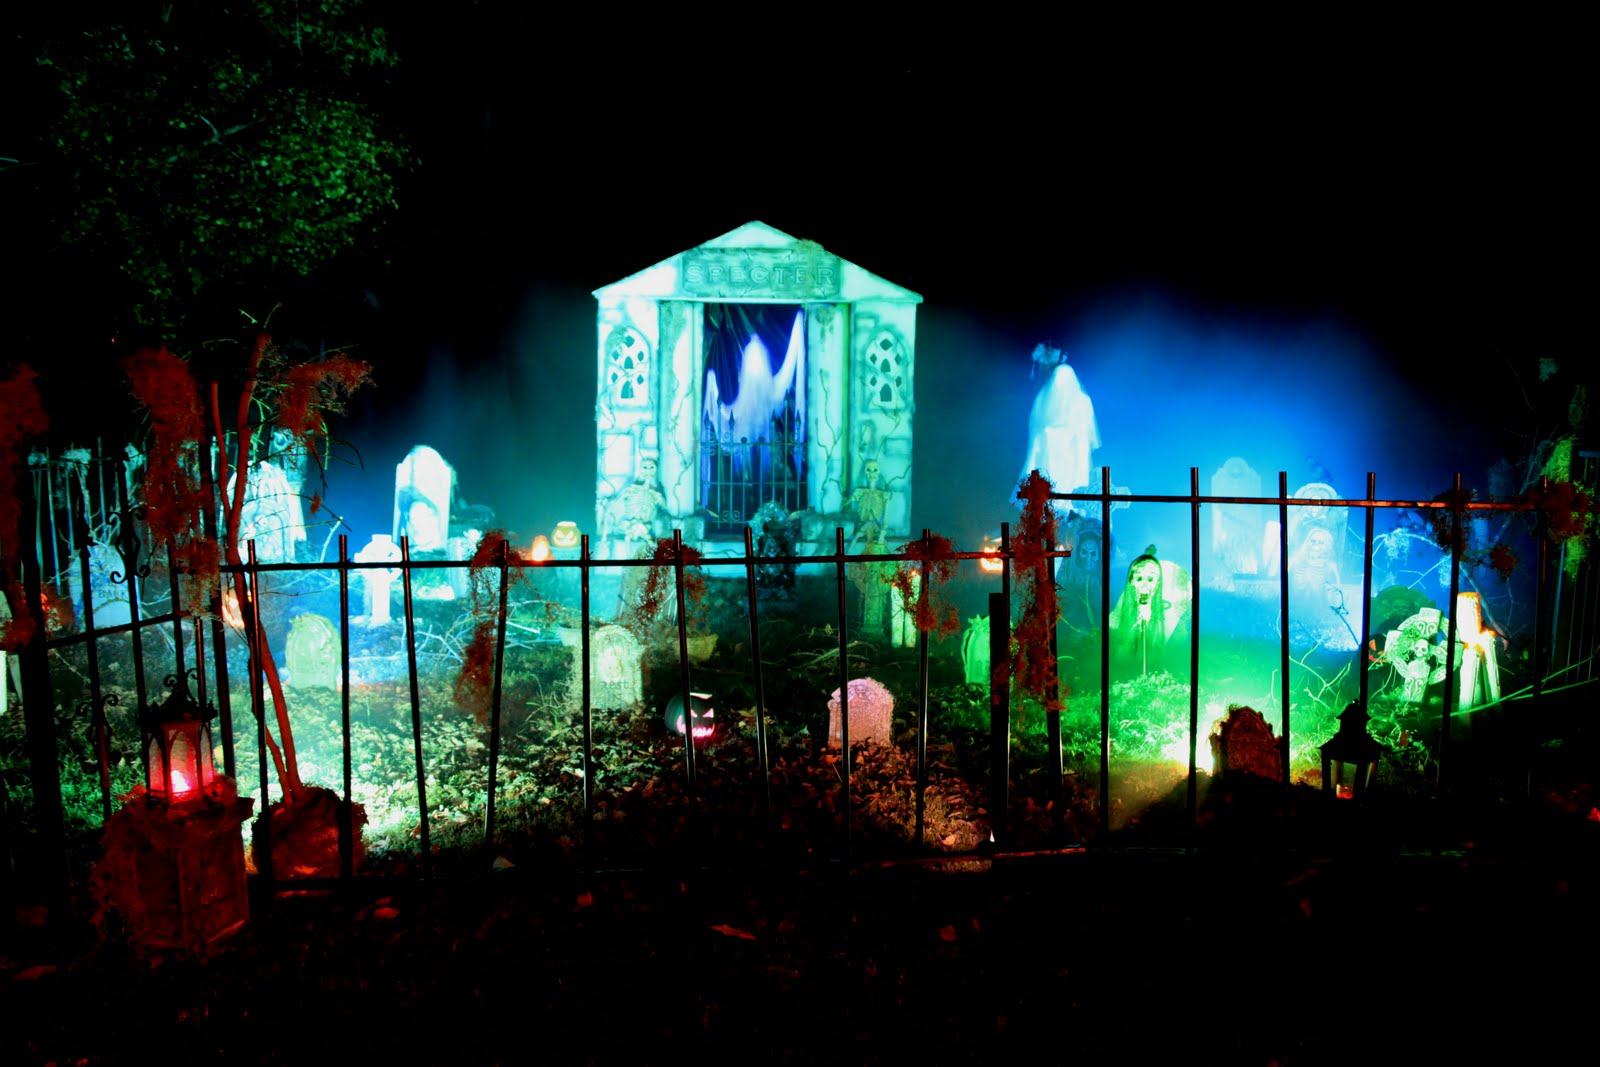 haunted house lighting ideas. The Haunted Mansion House Lighting Ideas G